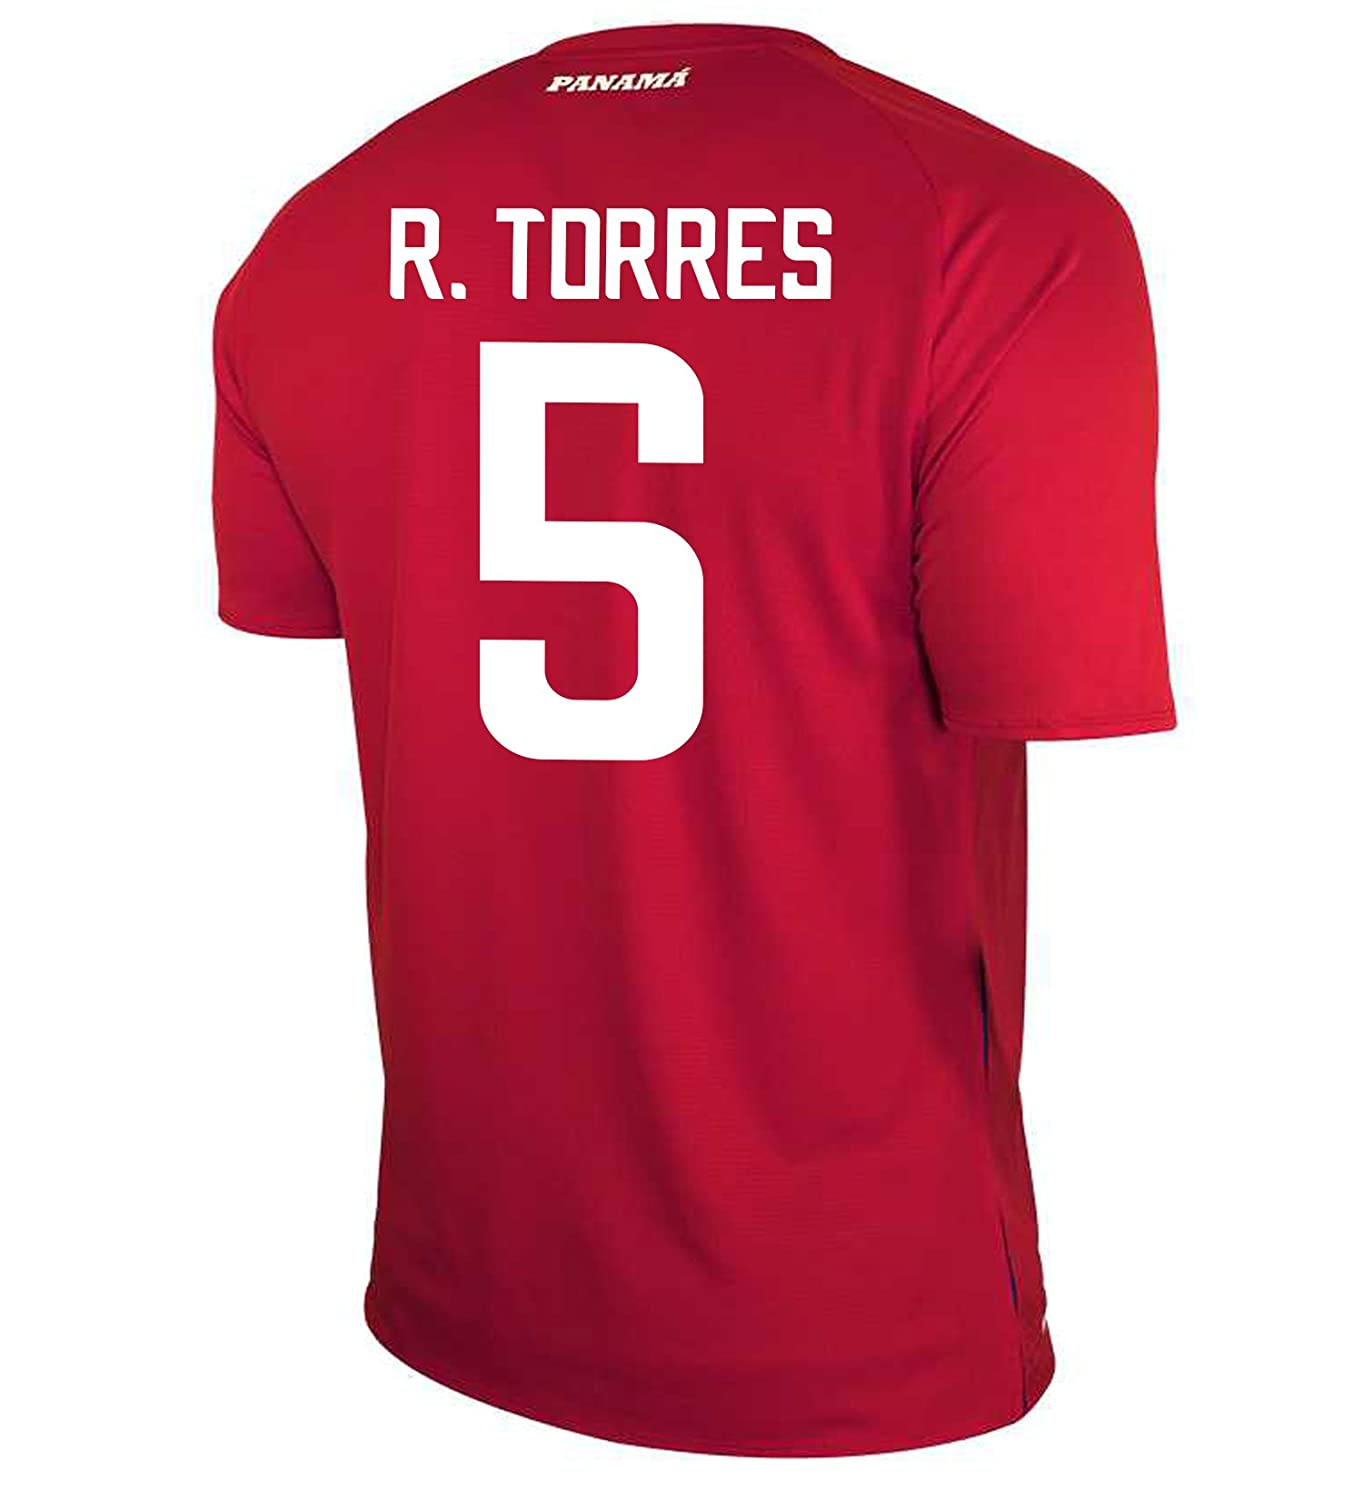 New Balance Men's R. TORRES # 5 Panama Home Soccer Jersey FIFA World Cup Russia 2018/サッカーユニフォーム パナマ ホーム用 トーレス # 5 B07D2L41J8 US Large